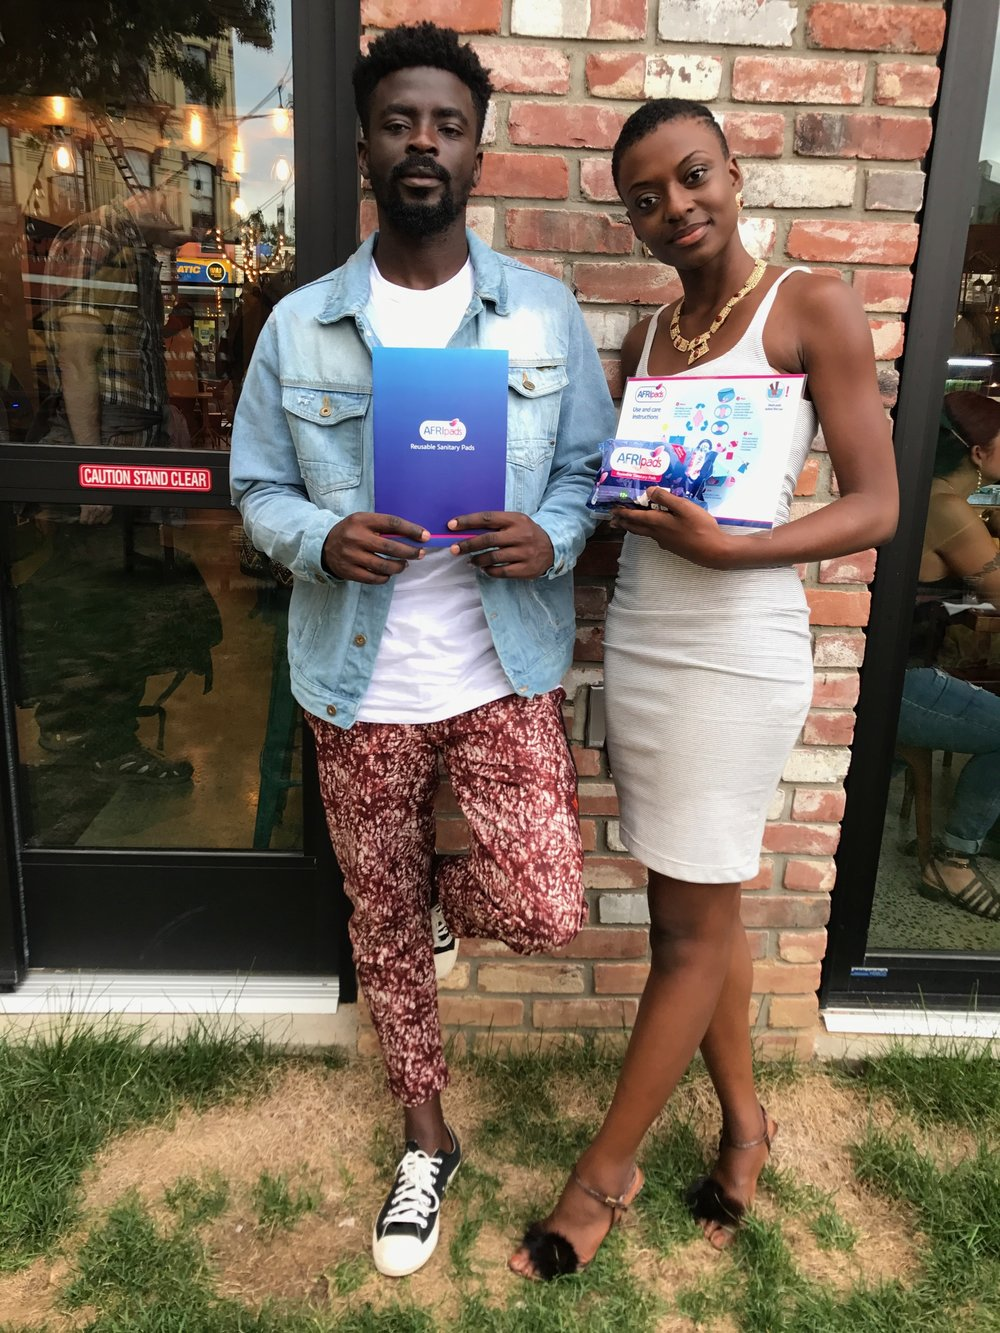 Sam Desalu, founder of Desalu Naturals & Jennifer Abu, founder of WACRIA holding AFRIpads which are reusable sanitary pads designed to provide superior feminine hygiene protection and comfort.  -